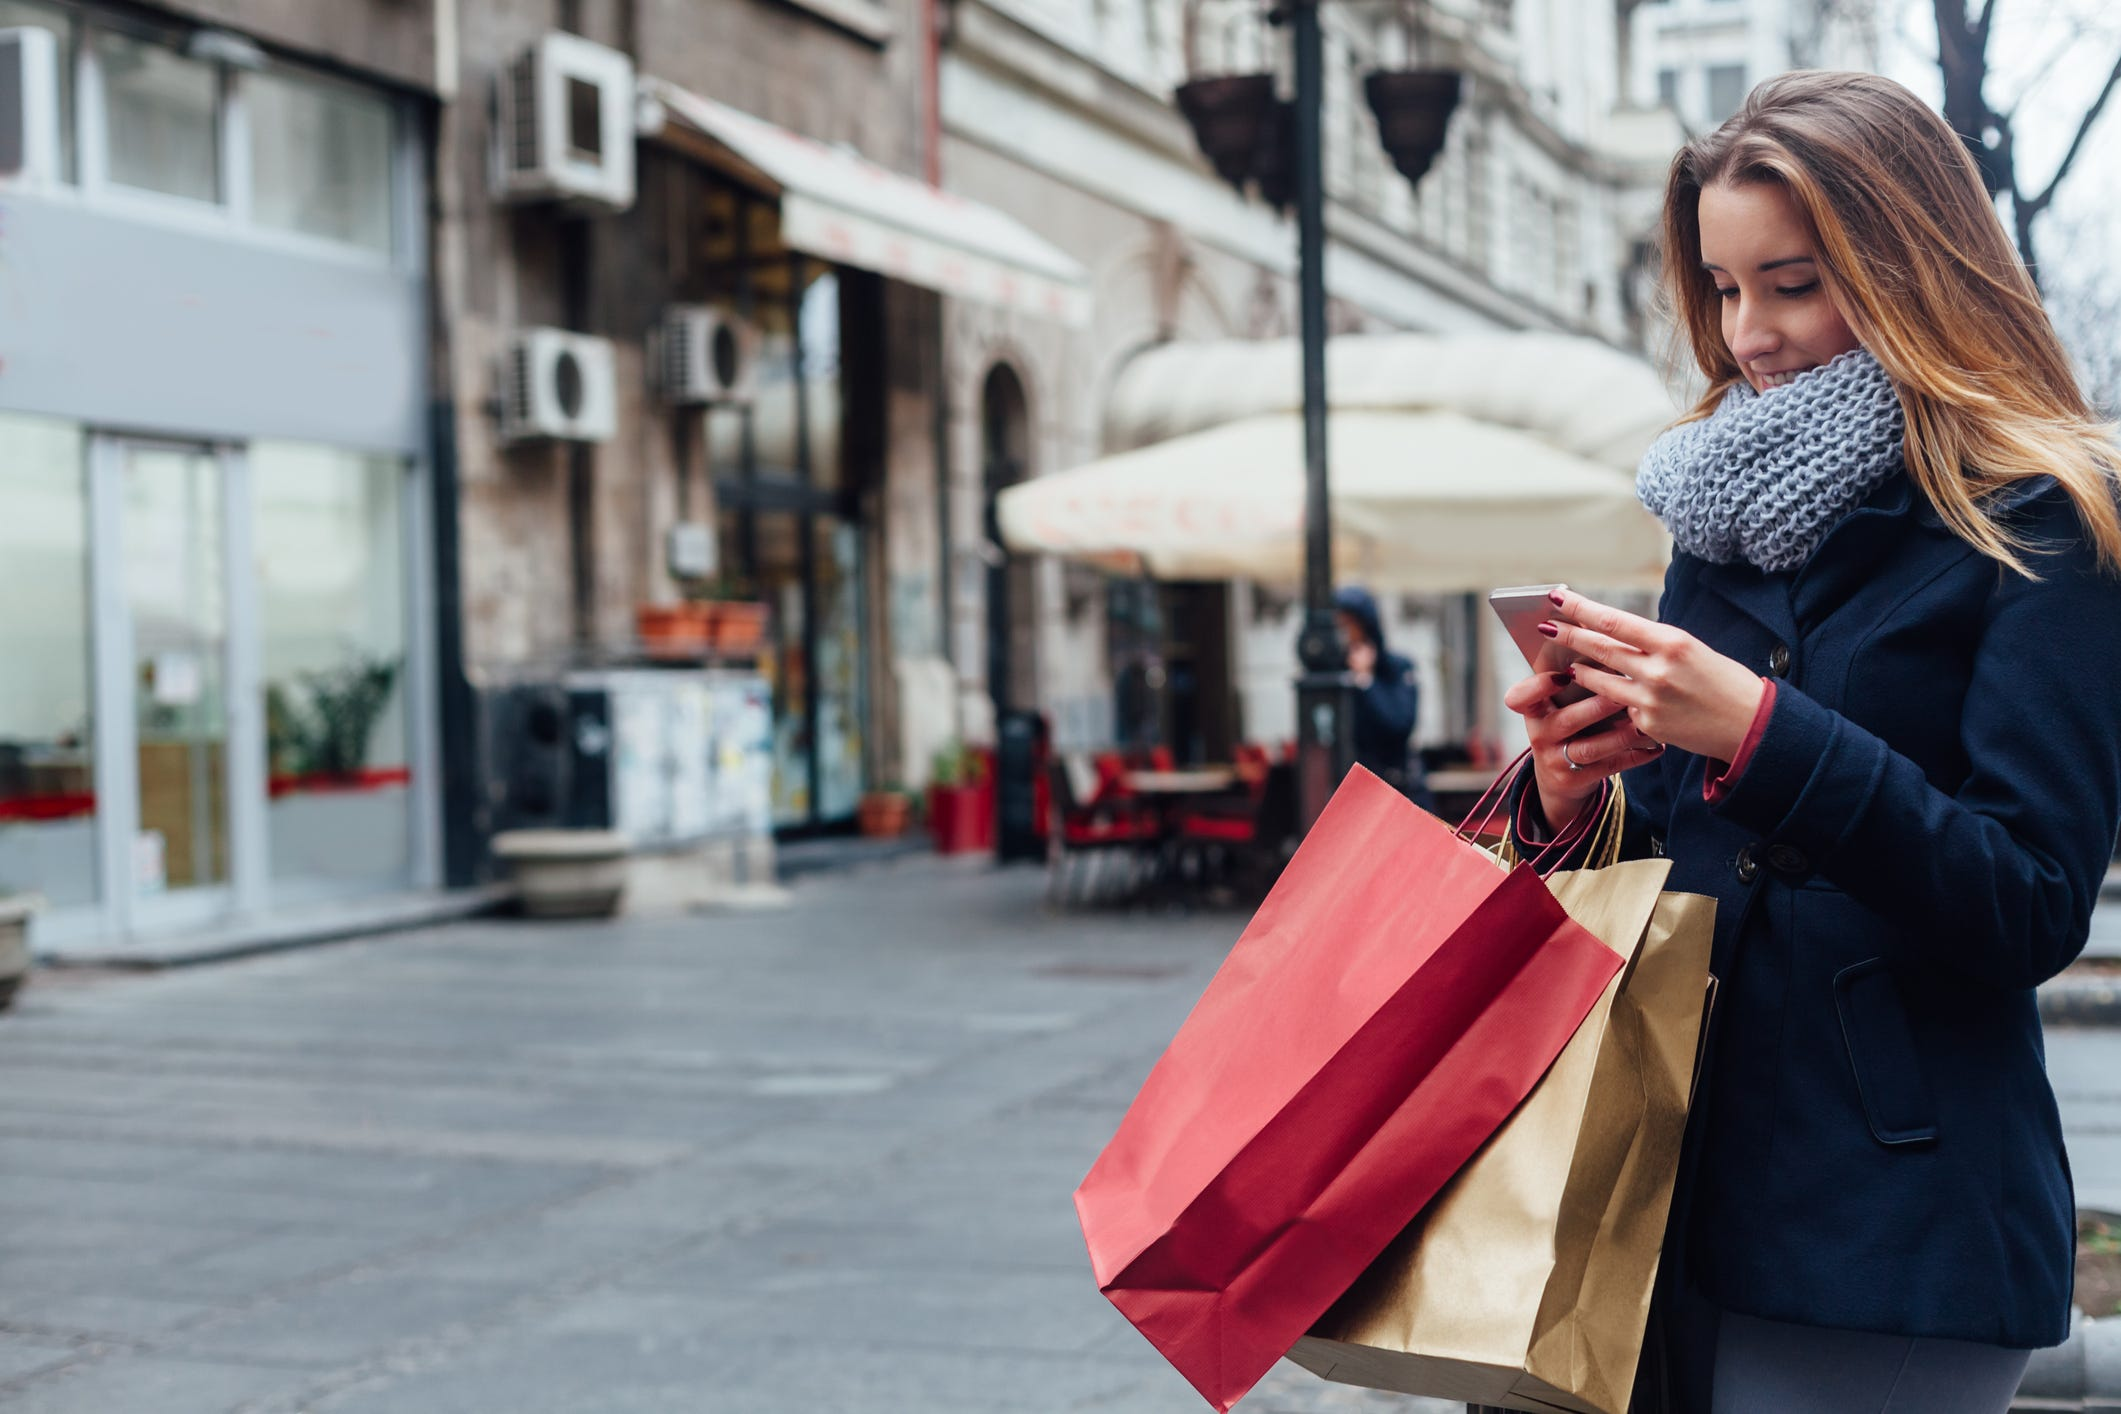 Shoppers expected to spend more than $1 trillion this holiday season